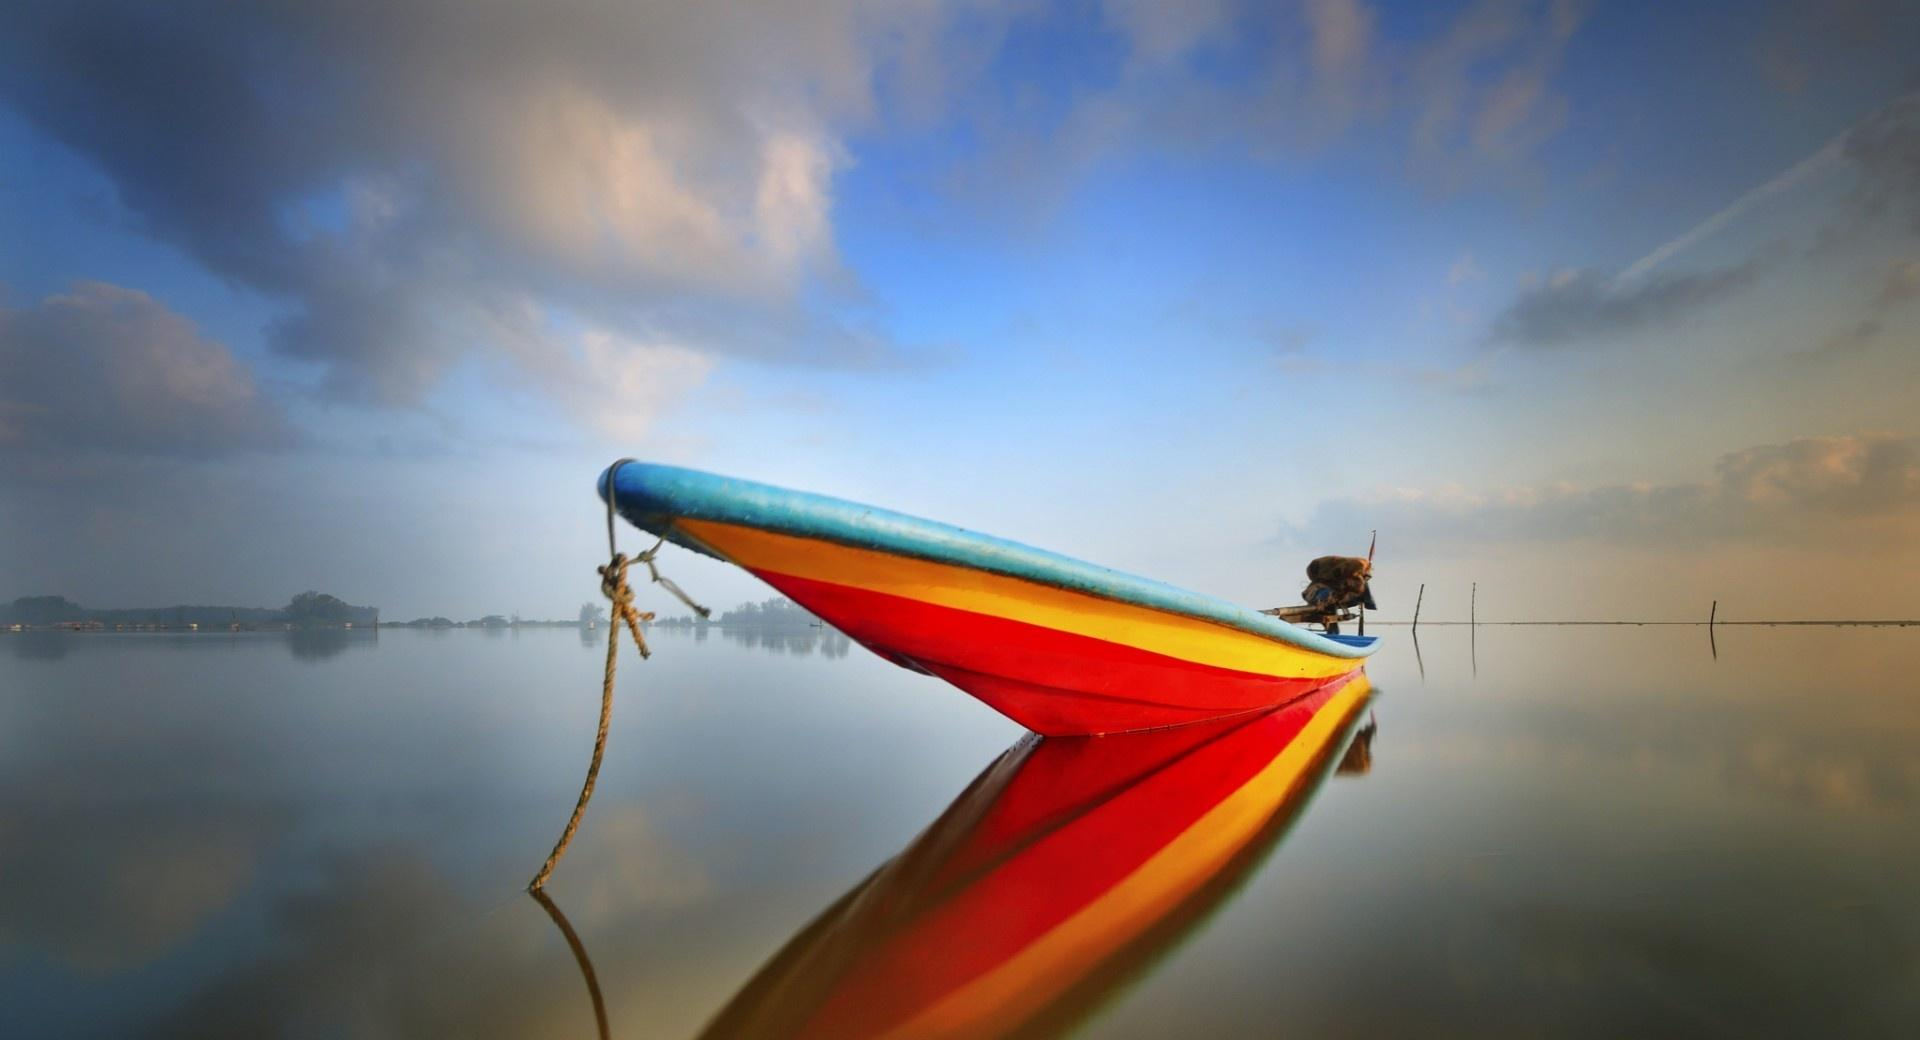 Sea Boat Calm wallpapers HD quality